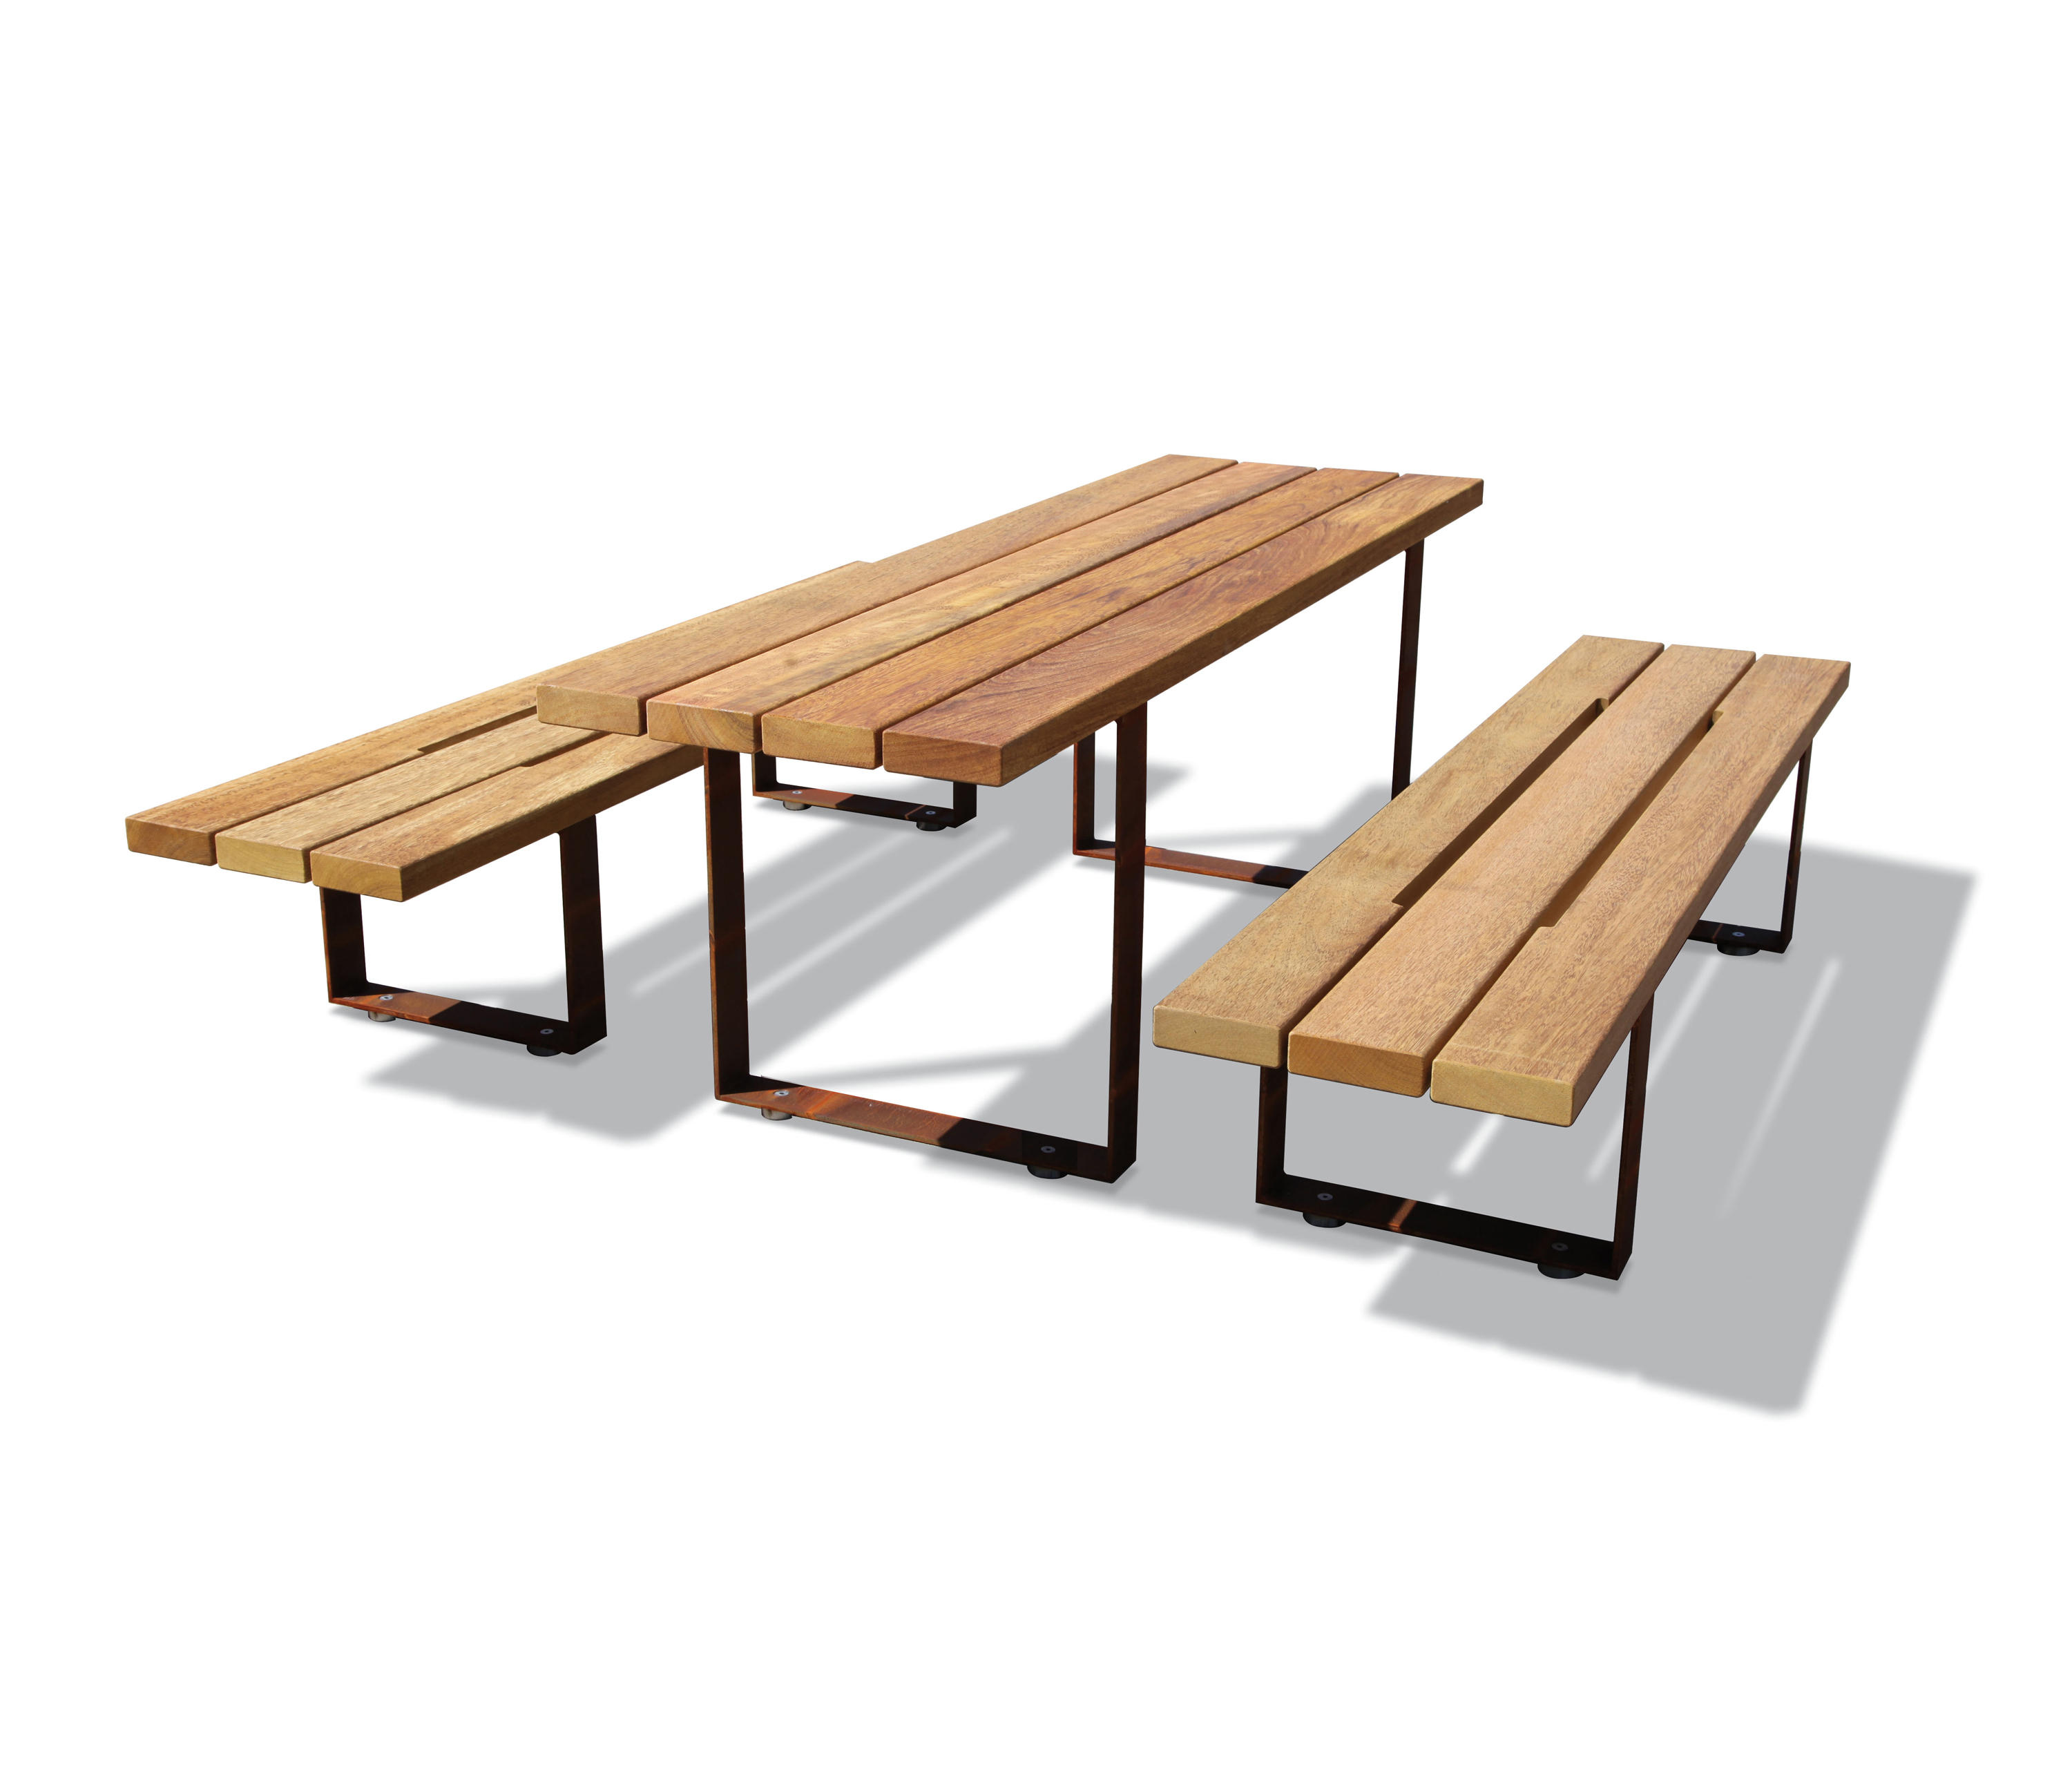 all products m ltd studio publicis benches newman jennifer table bench block